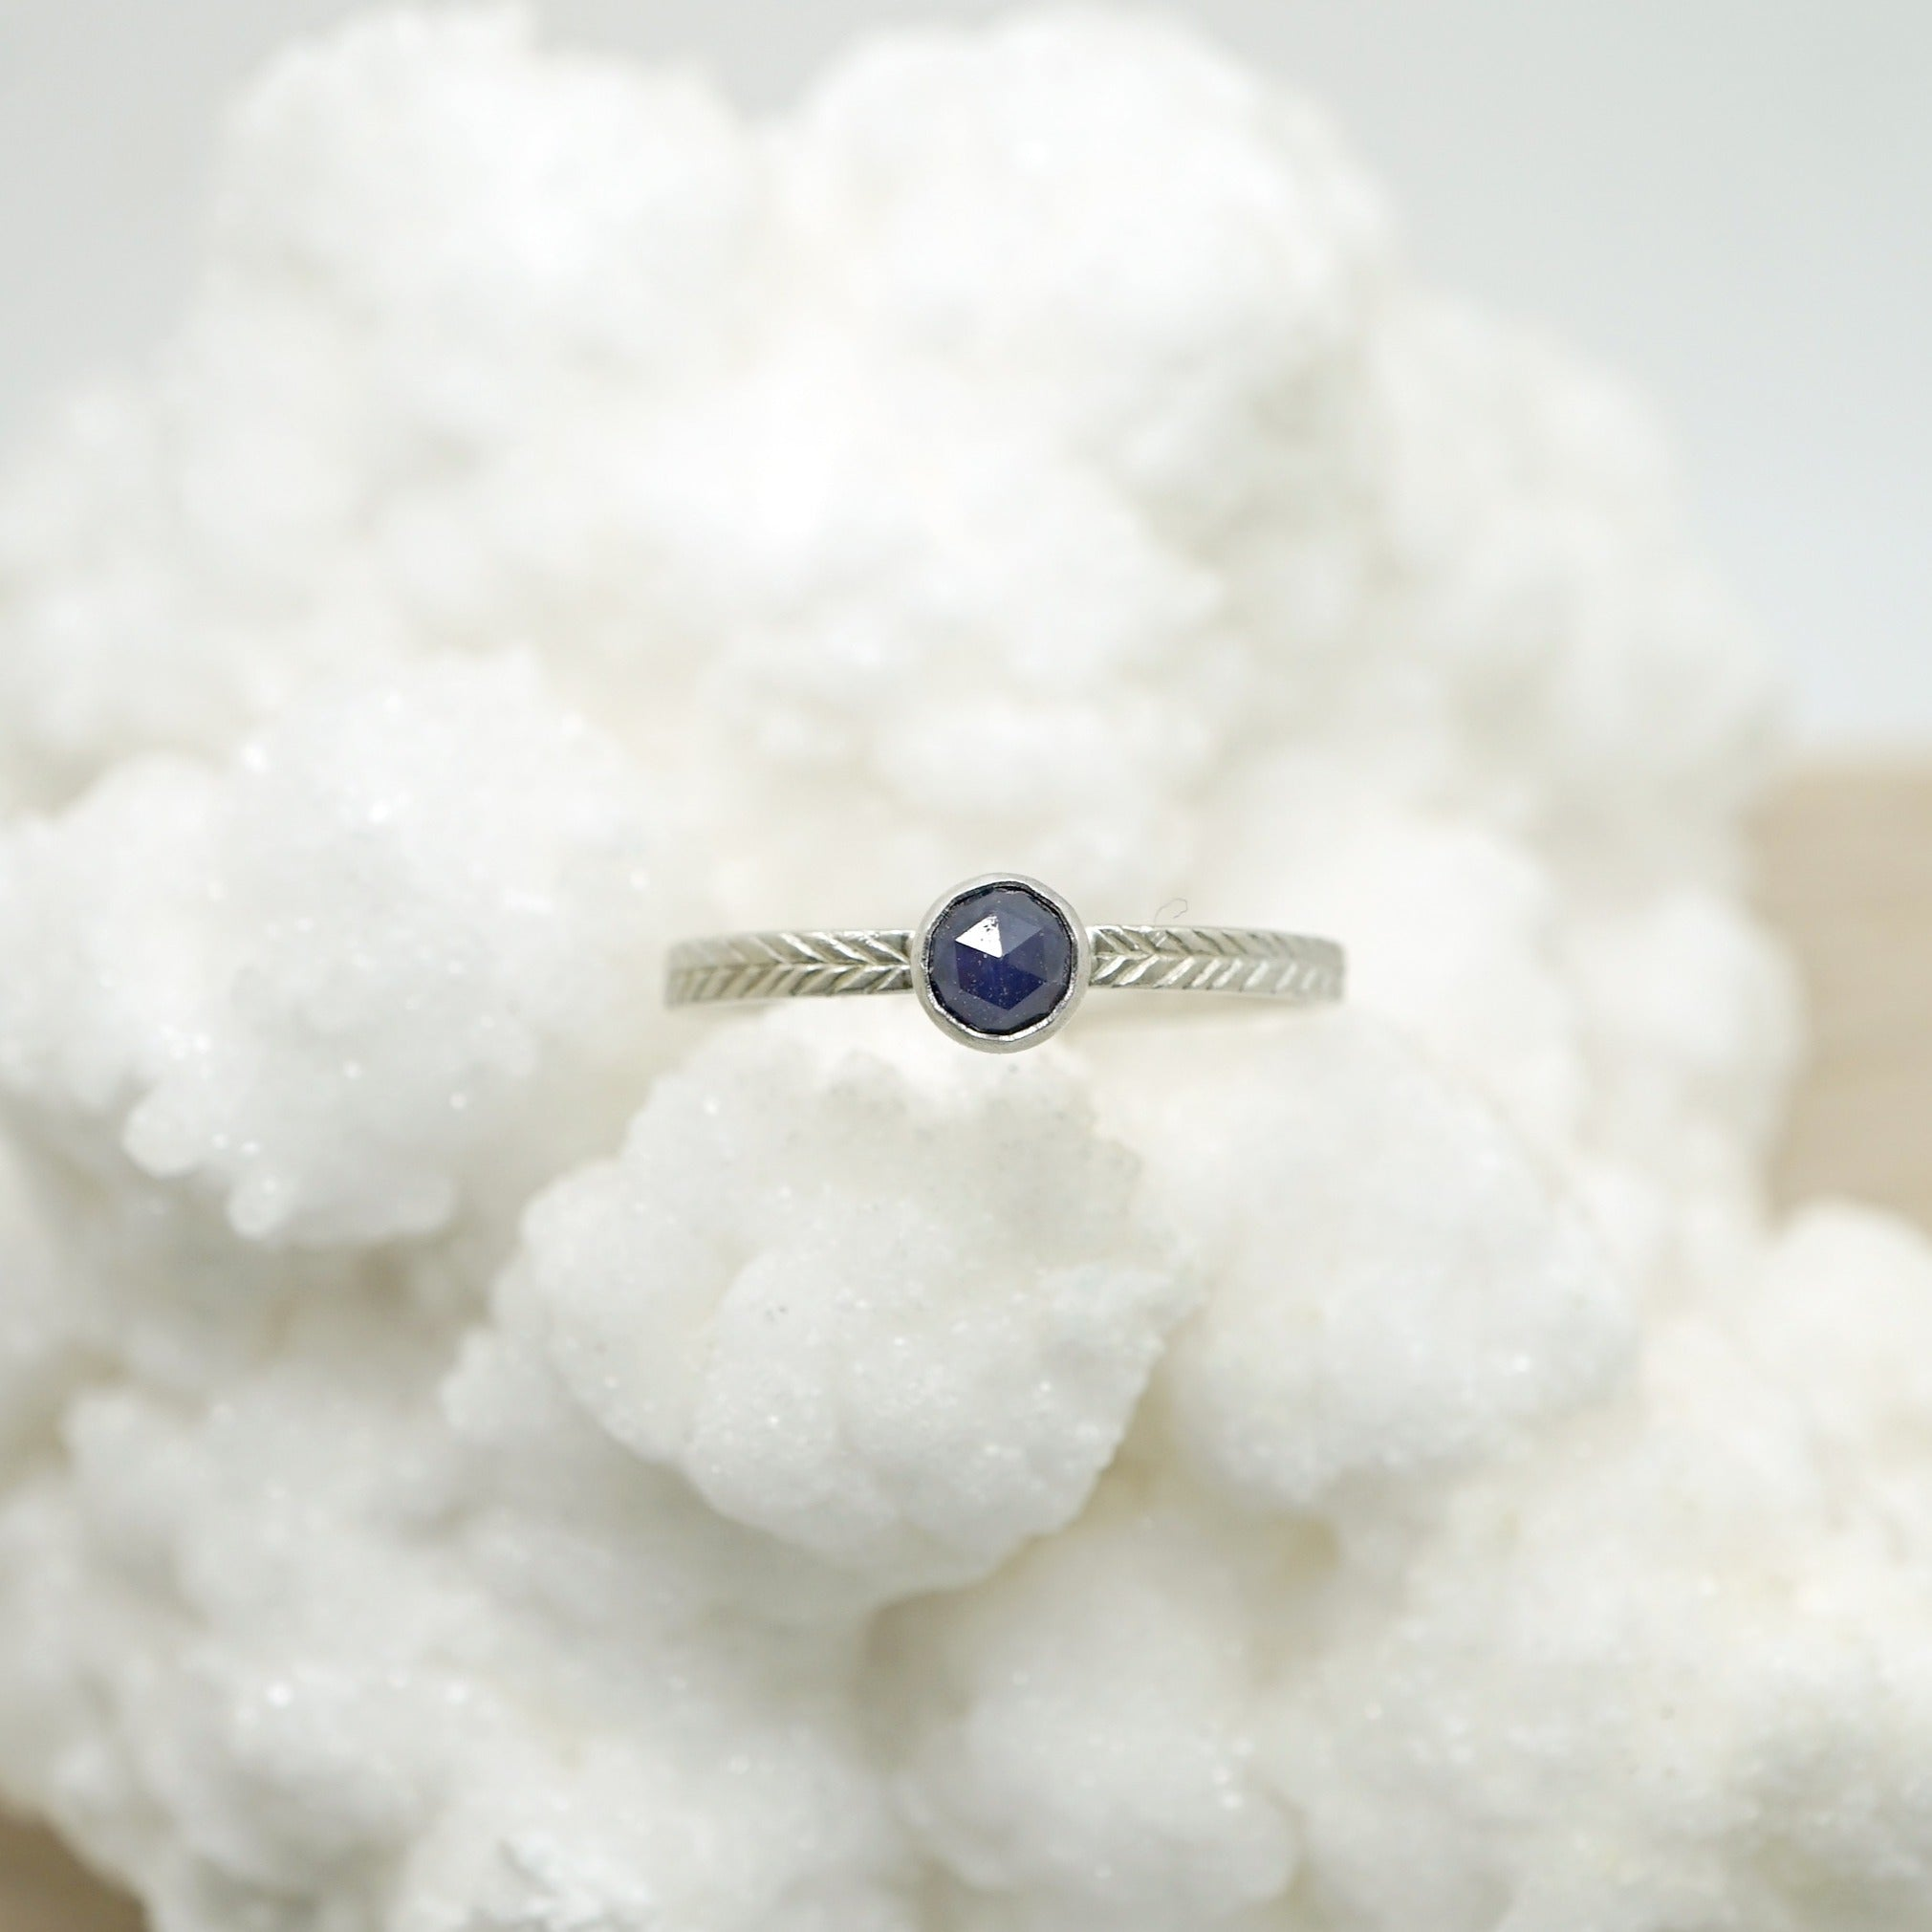 Sapphire ring with hand-carved feather textures